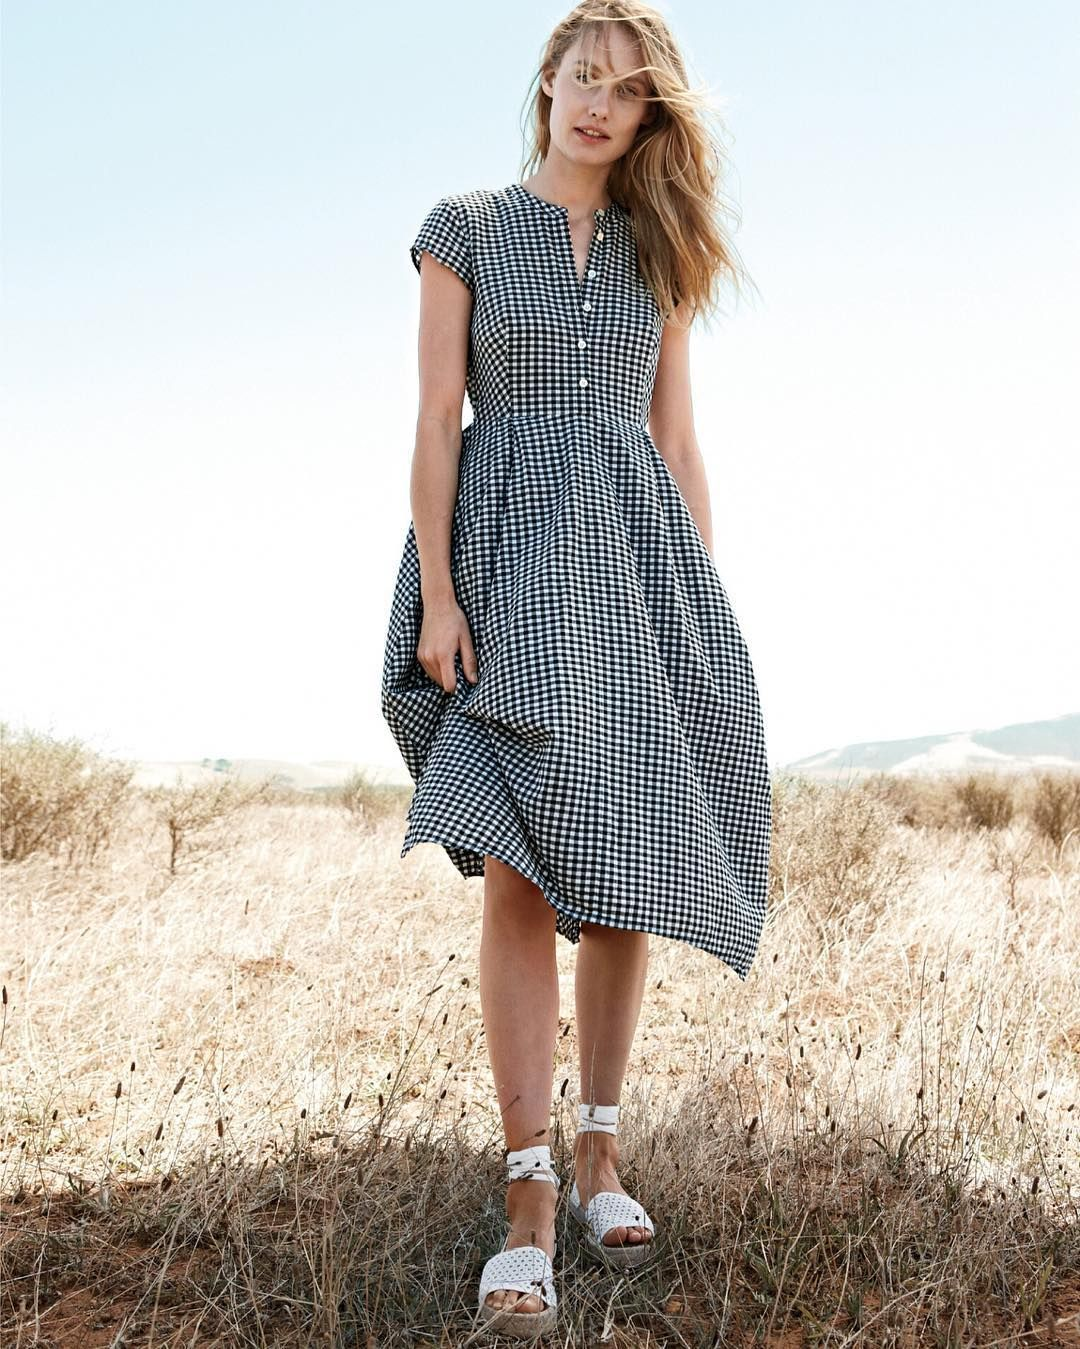 7893e7f51aa6 An easy summer dress. Shop our short-sleeve gingham dress via the link in  our bio.  jcrewalways by jcrew